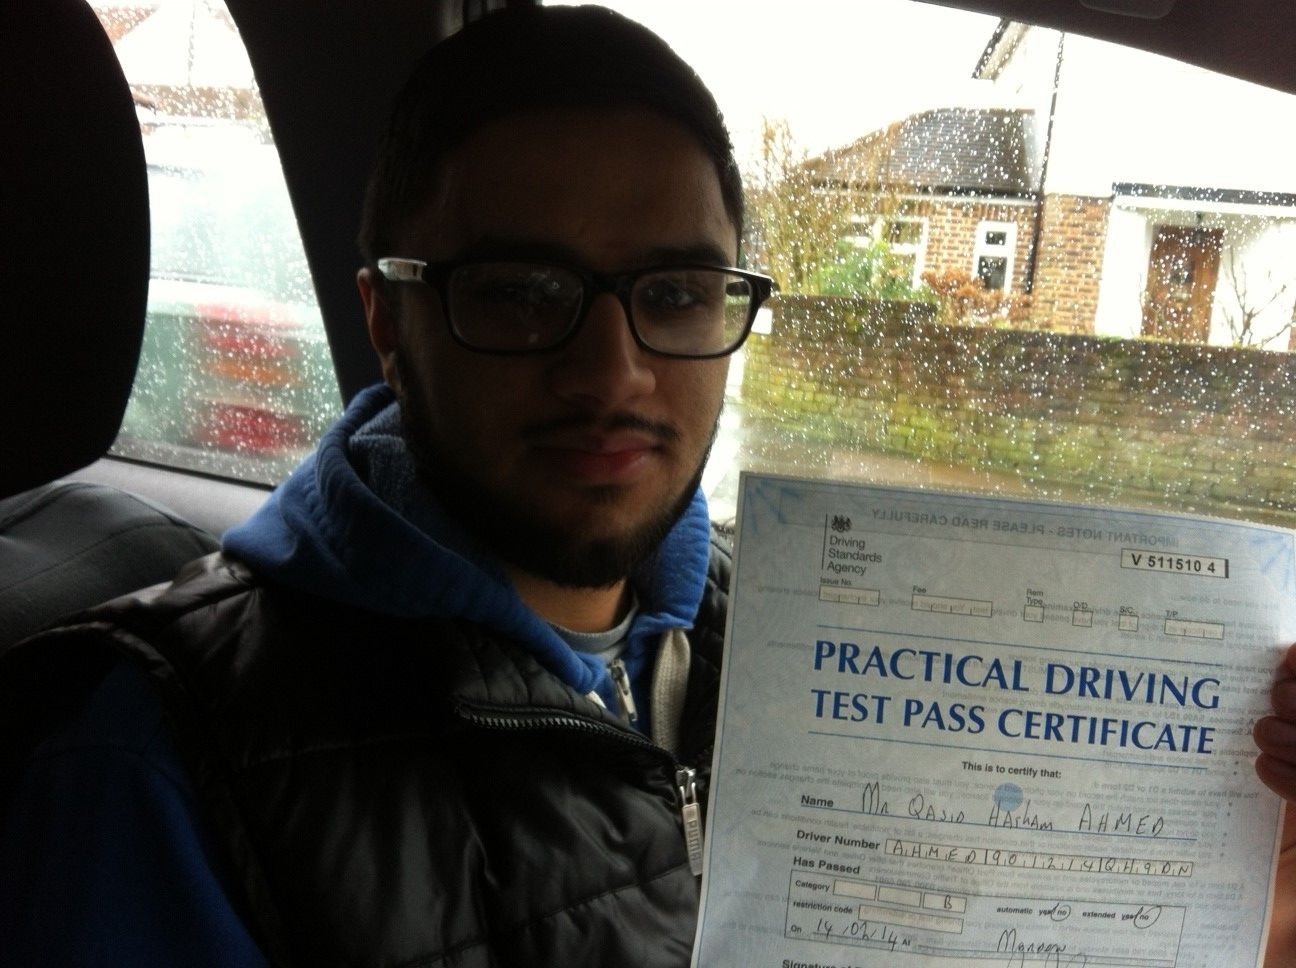 Well done to Qasid Ahmed from Earlsfield who passed his test on Friday 14th February at Morden test centre.